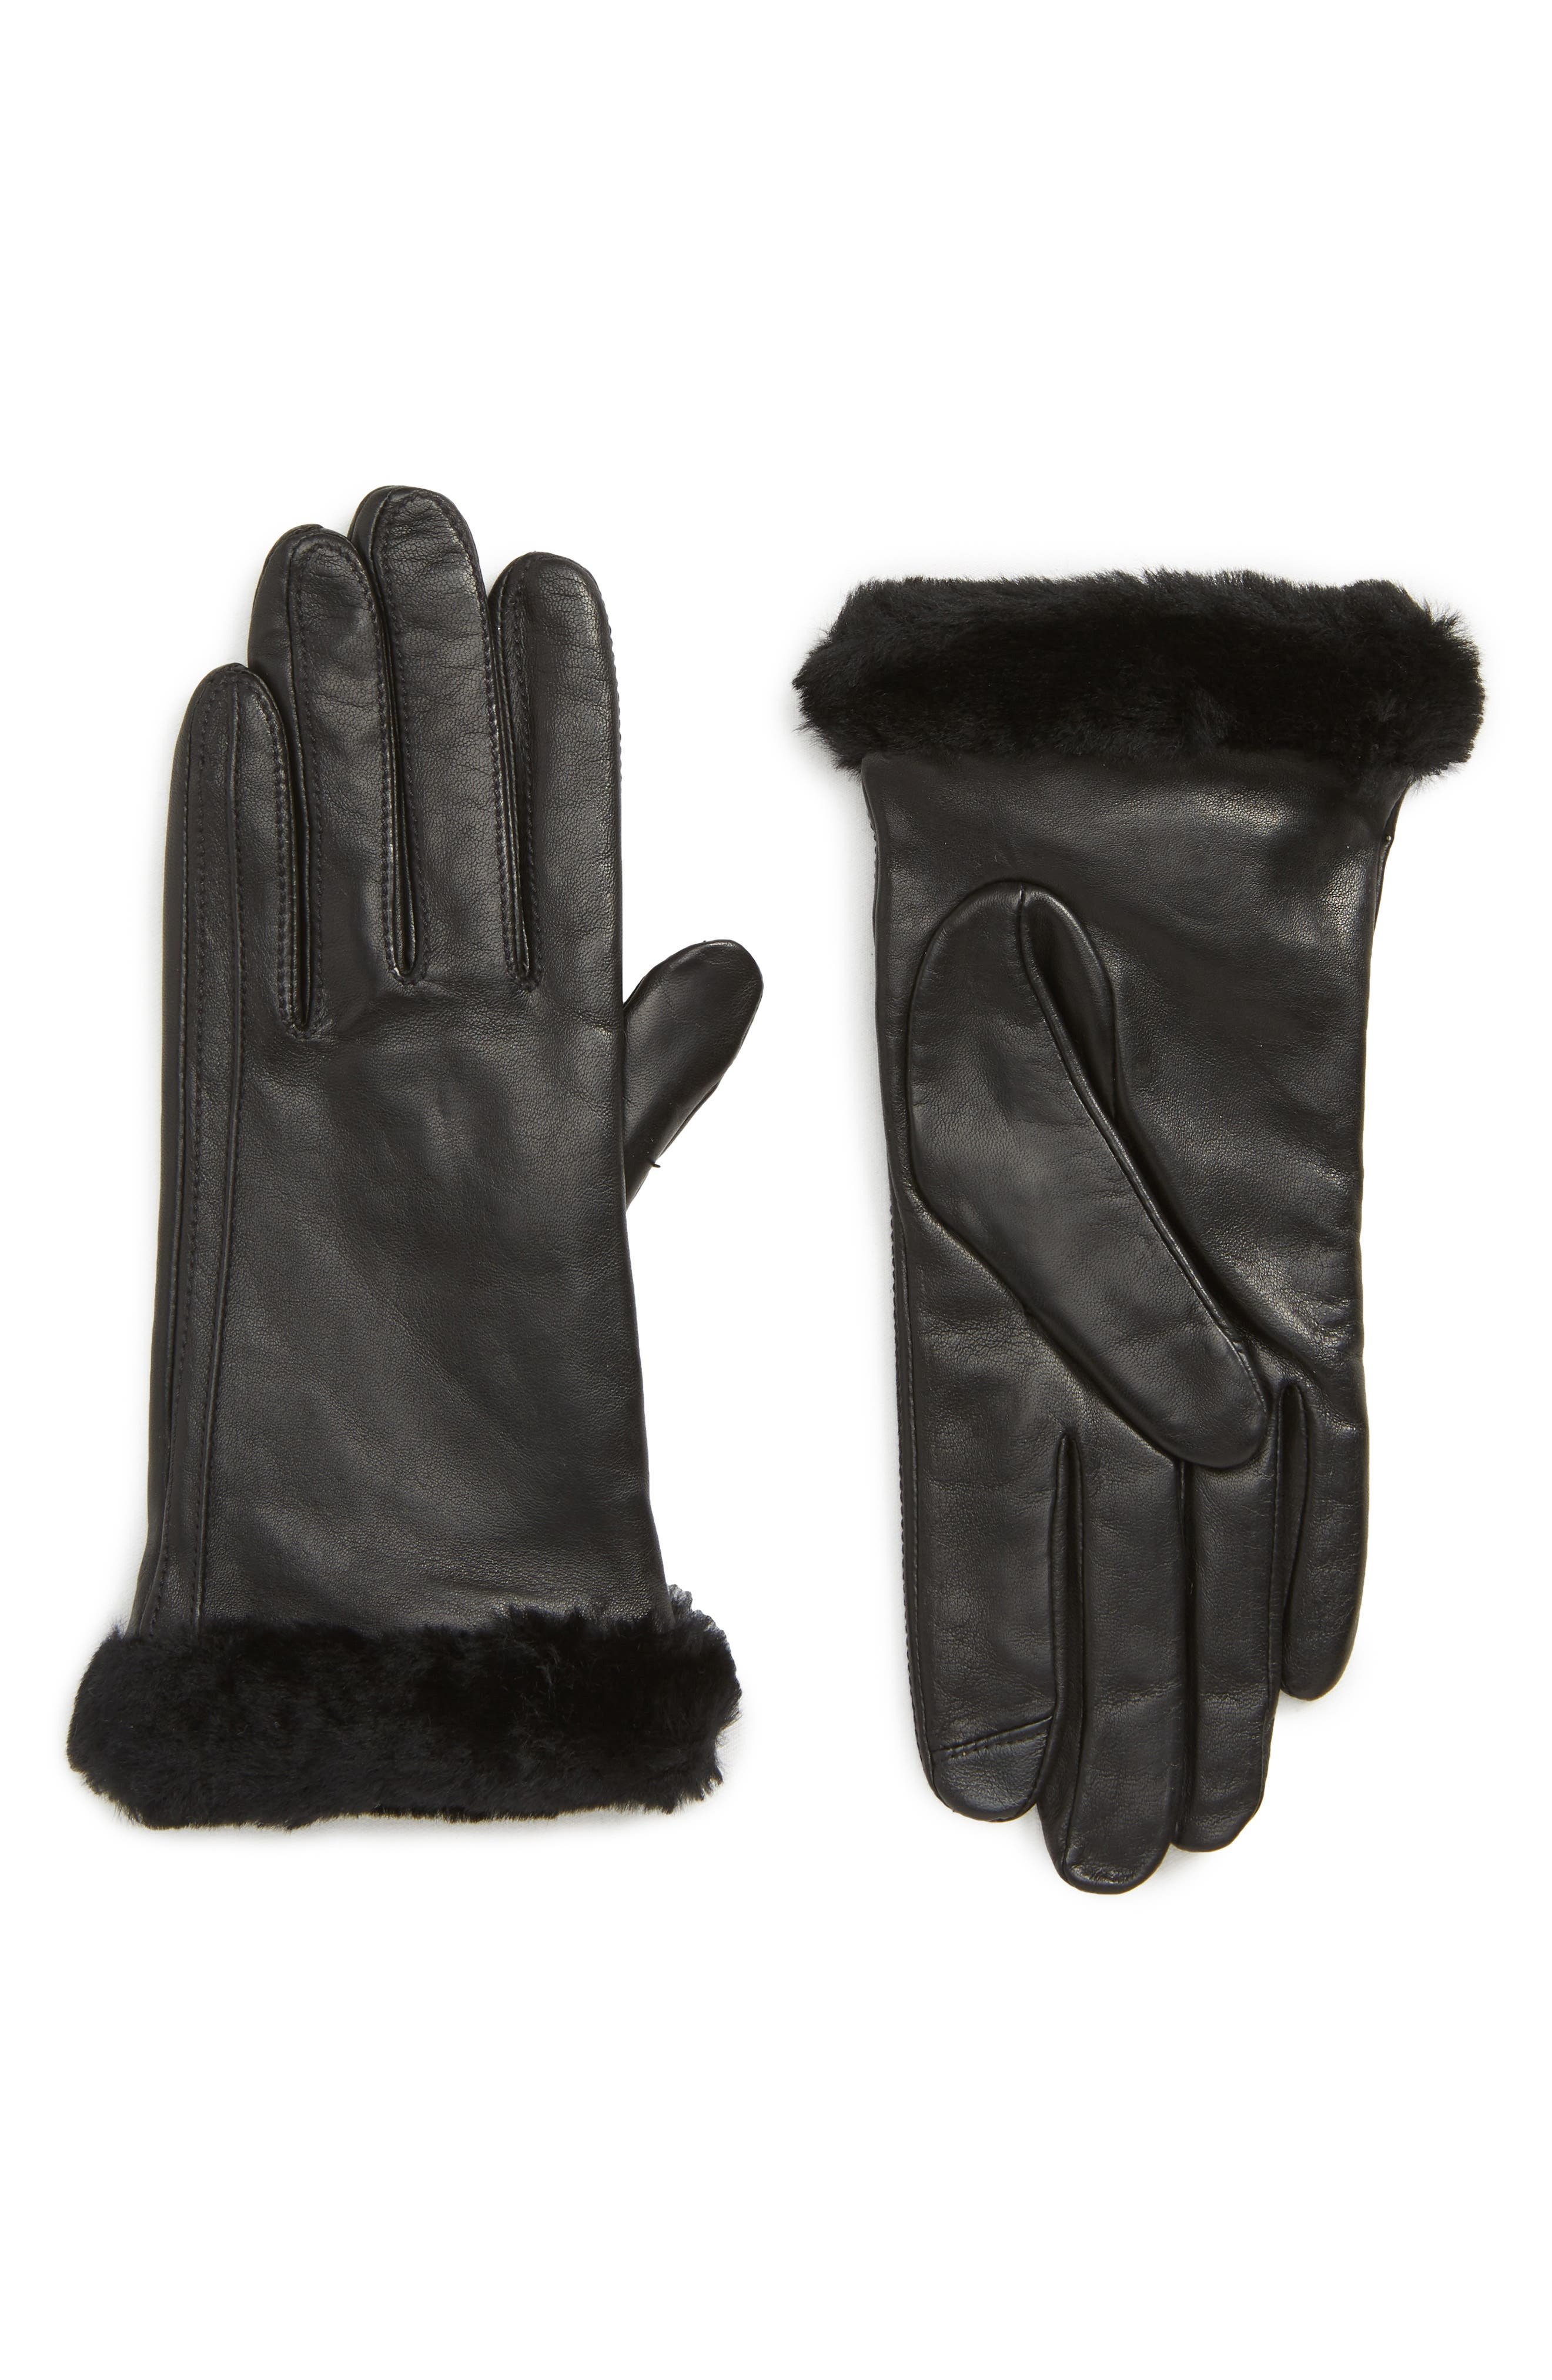 Ugg Touchscreen Compatible Leather Gloves With Genuine Shearling Trim, Black